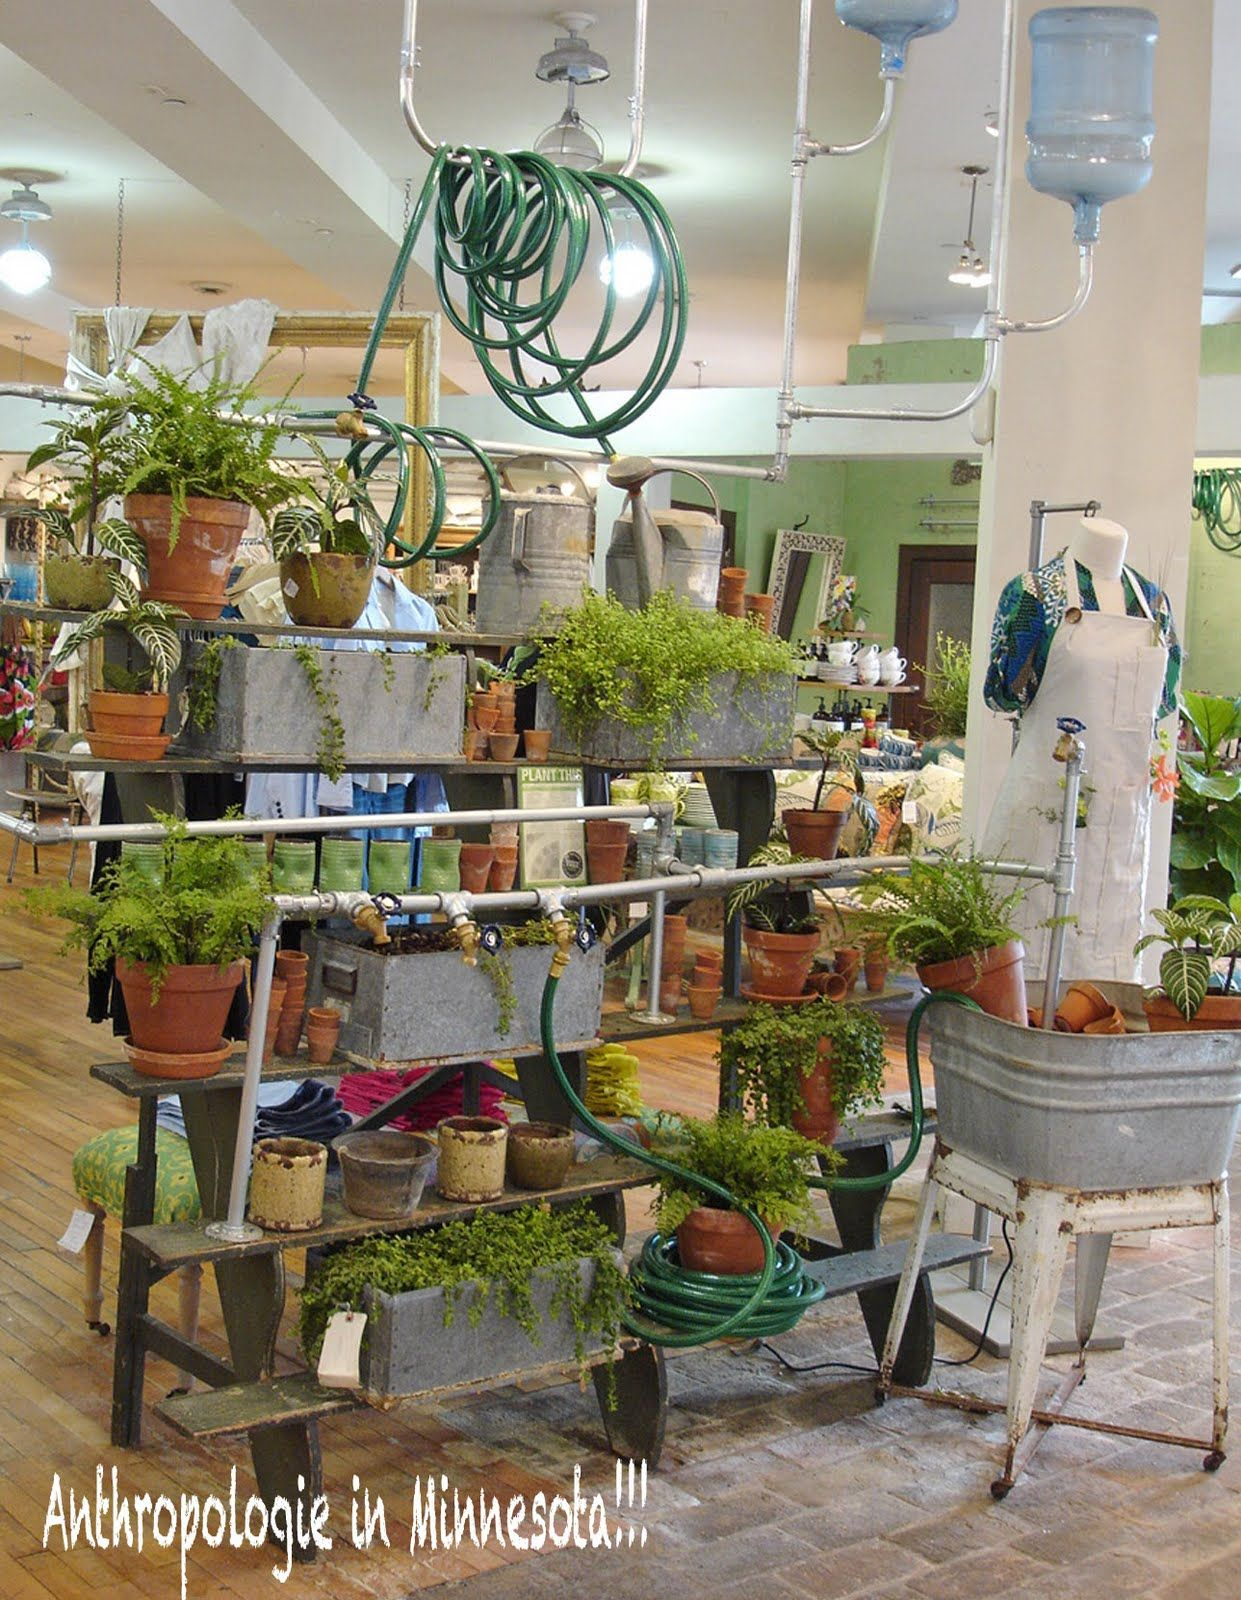 Anthropologie Garden Display Ideas Pinterest Bahçeler Ve